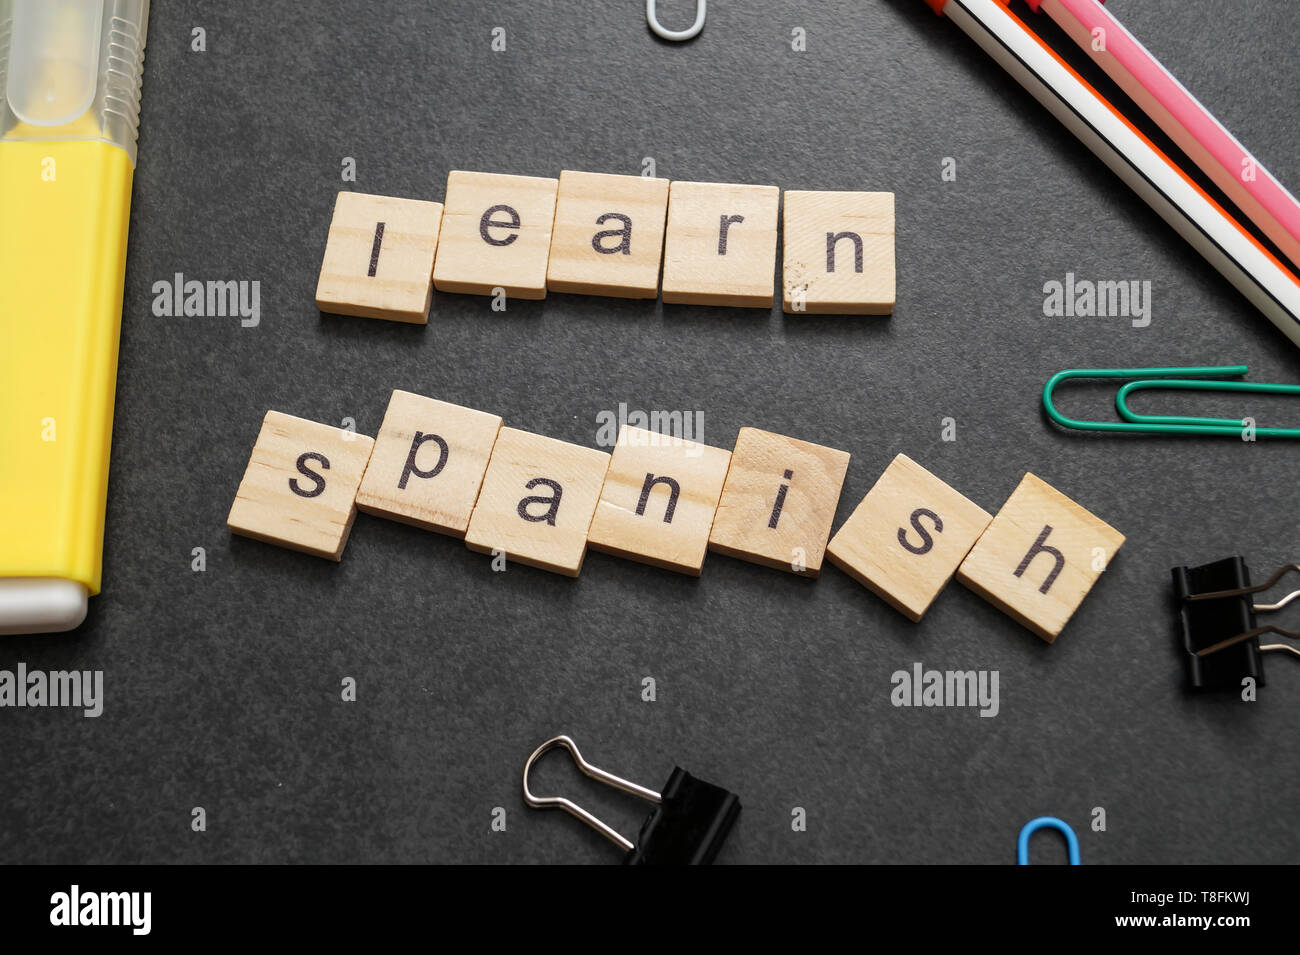 Word LEARN SPANISH written on wood block. Close up - Stock Image